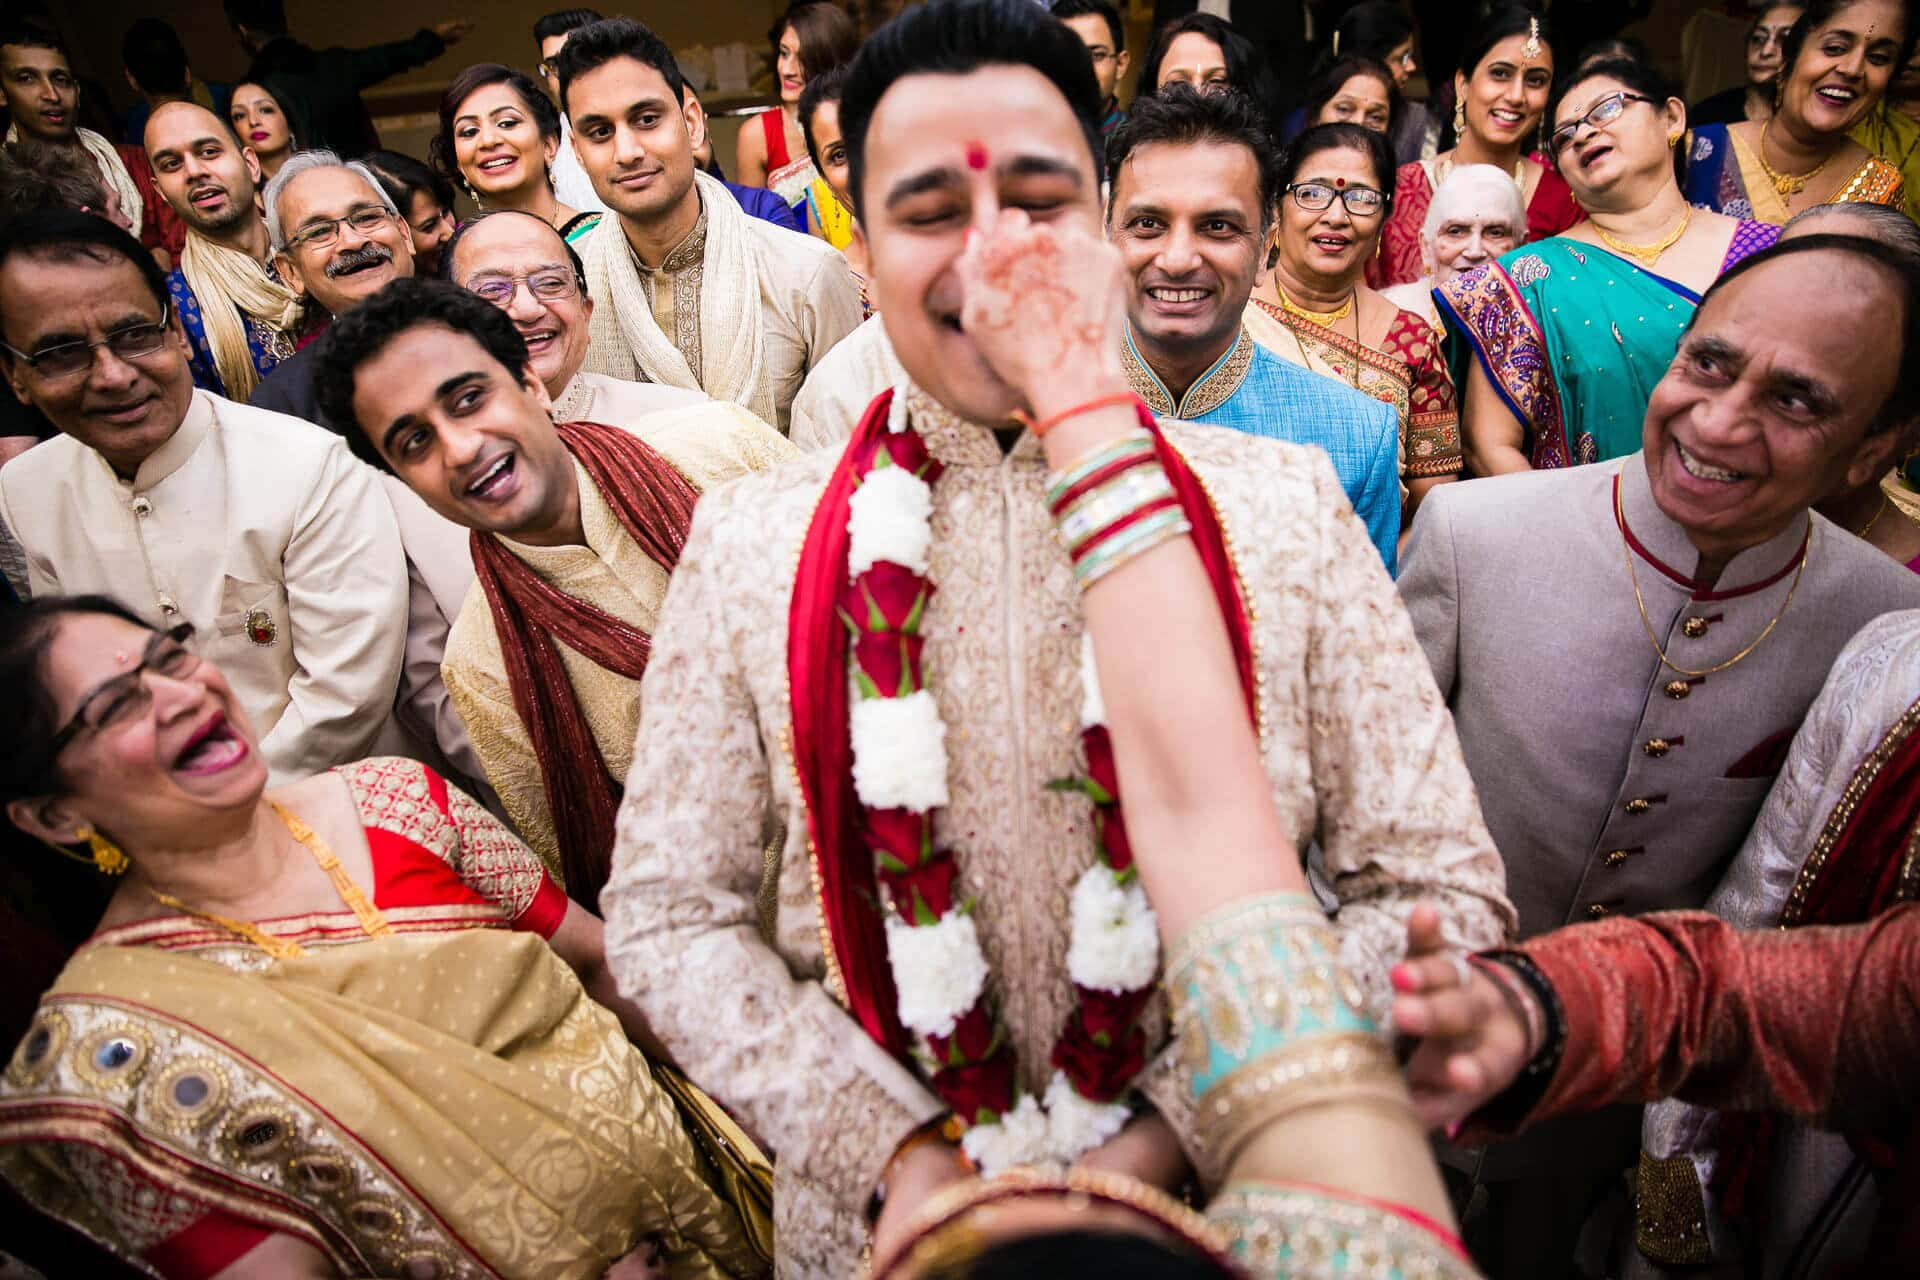 Groom's nose being pulled at Hindu Wedding